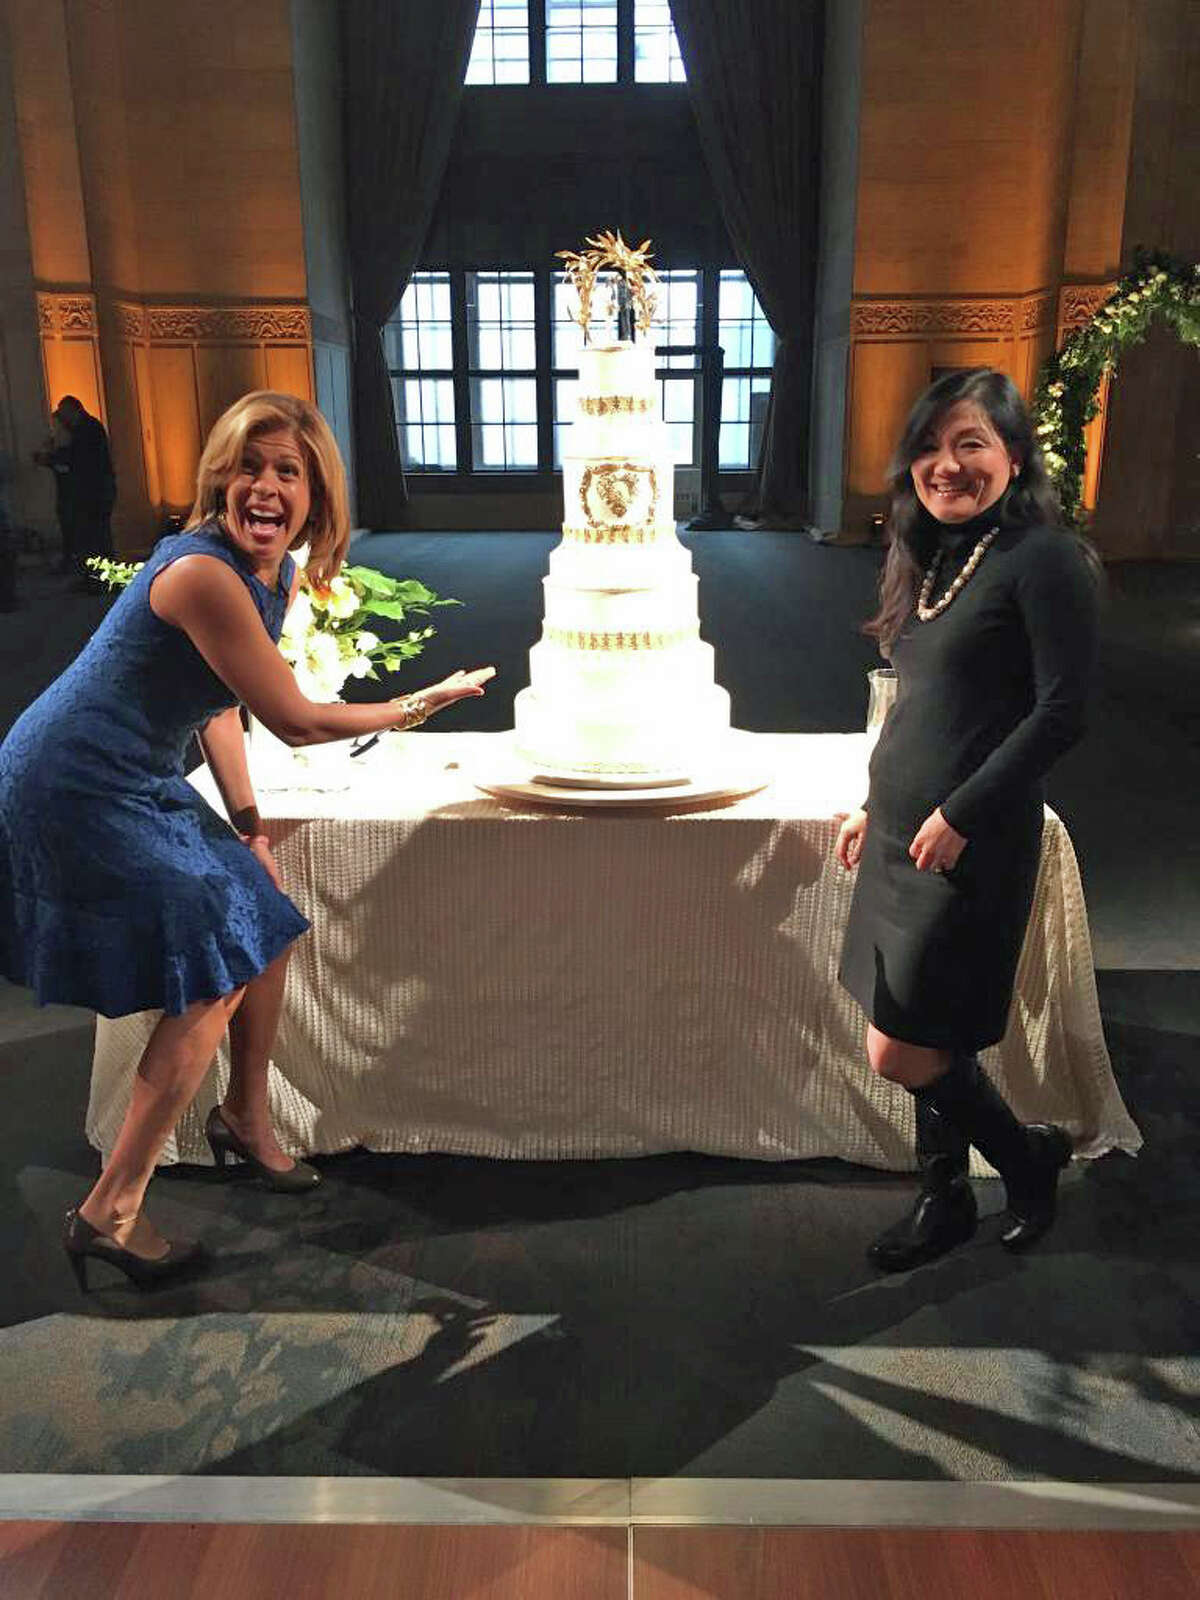 Today Show co-host Hoda Kotb with Ana Parzych of Ana Parzych Cakes and the cake she designed for the Valentine's segment on the Today Show on Friday.